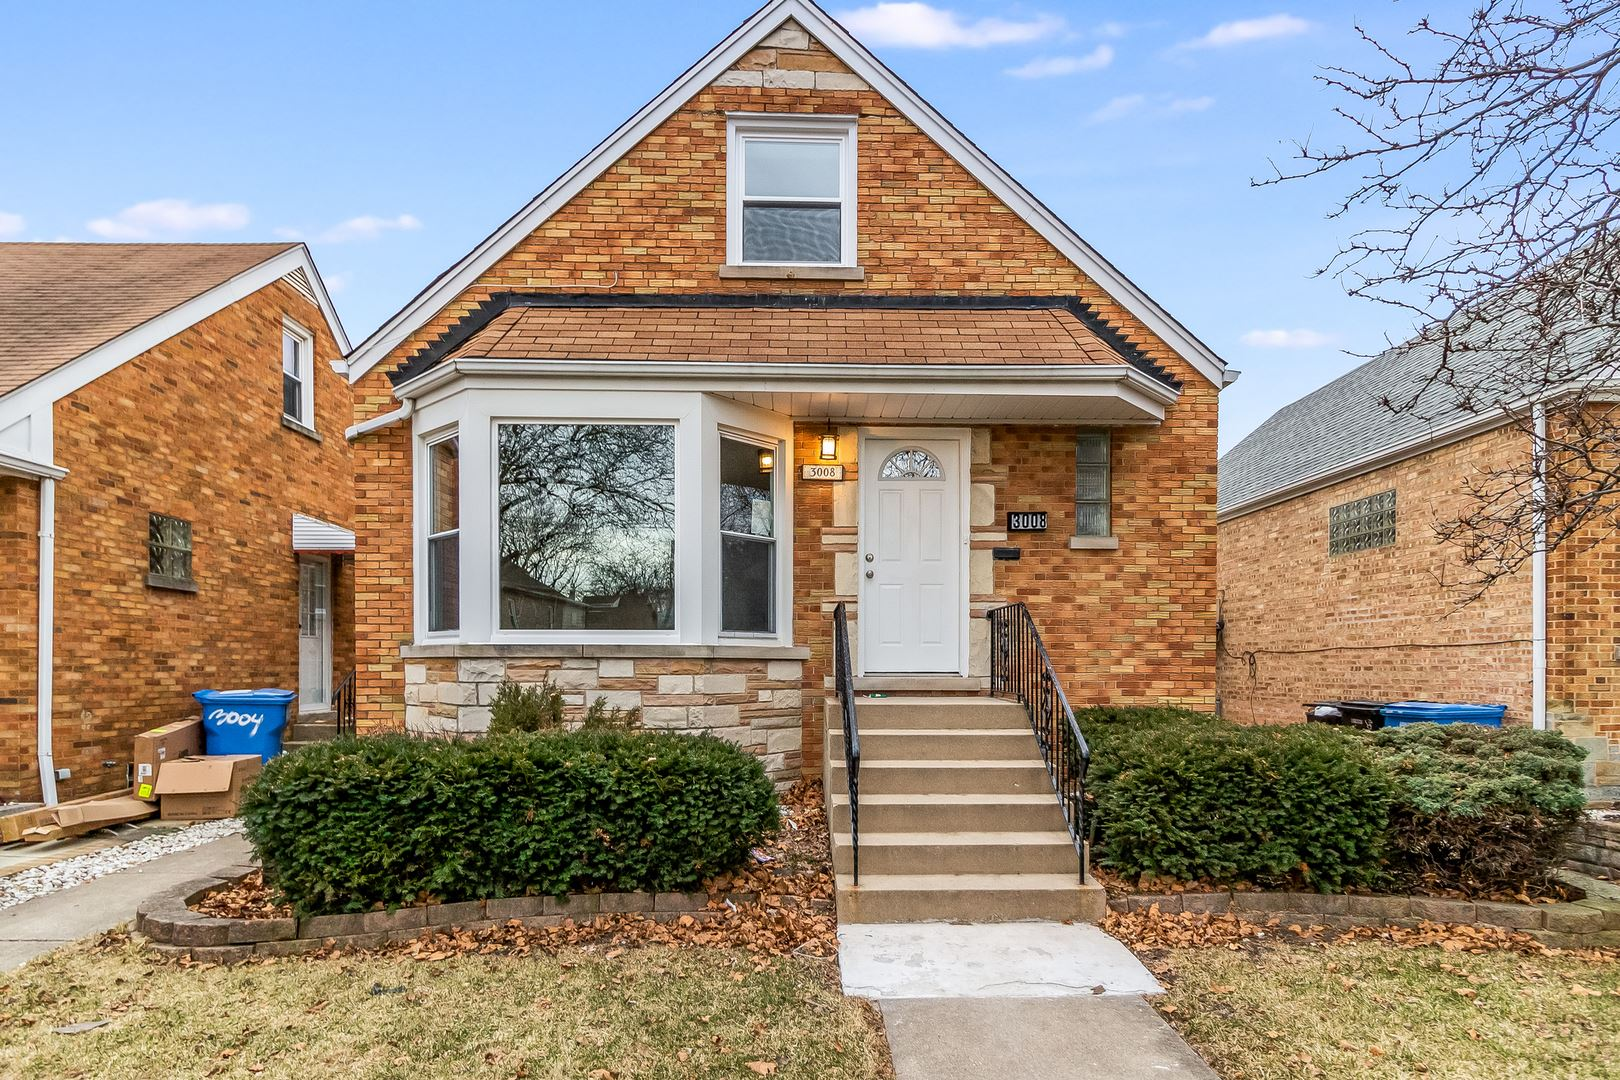 3008 N ODELL Avenue, Chicago, IL 60707 - #: 10624697